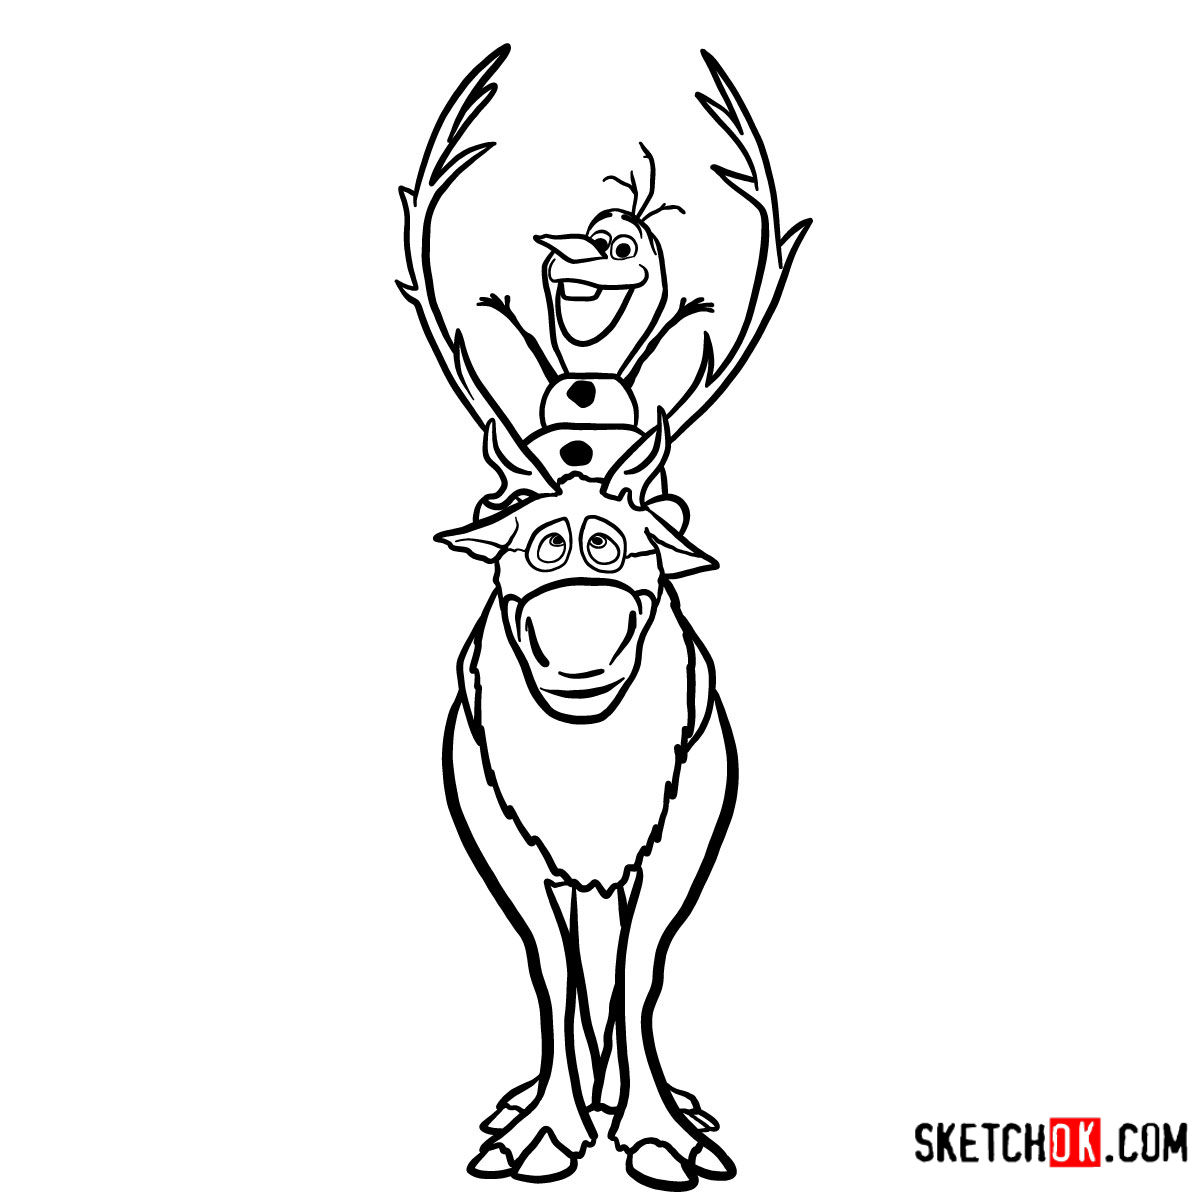 how to draw sven from frozen how to draw olaf riding sven frozen sketchok step by how sven frozen draw to from